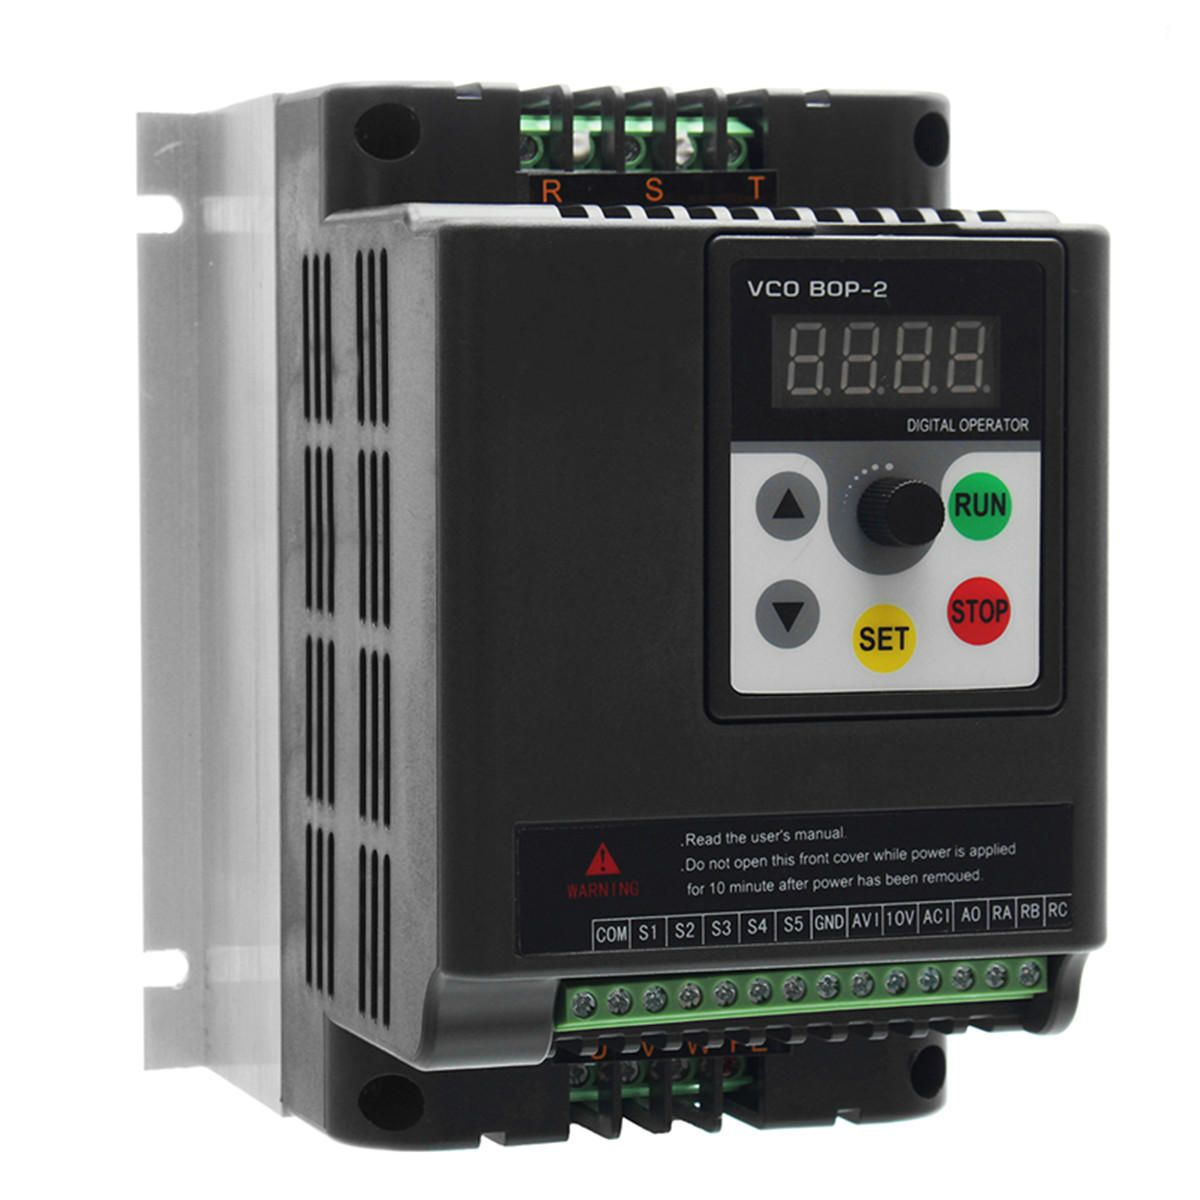 89] 0 75KW 380V Variable Frequency Inverter Built-in PLC 3